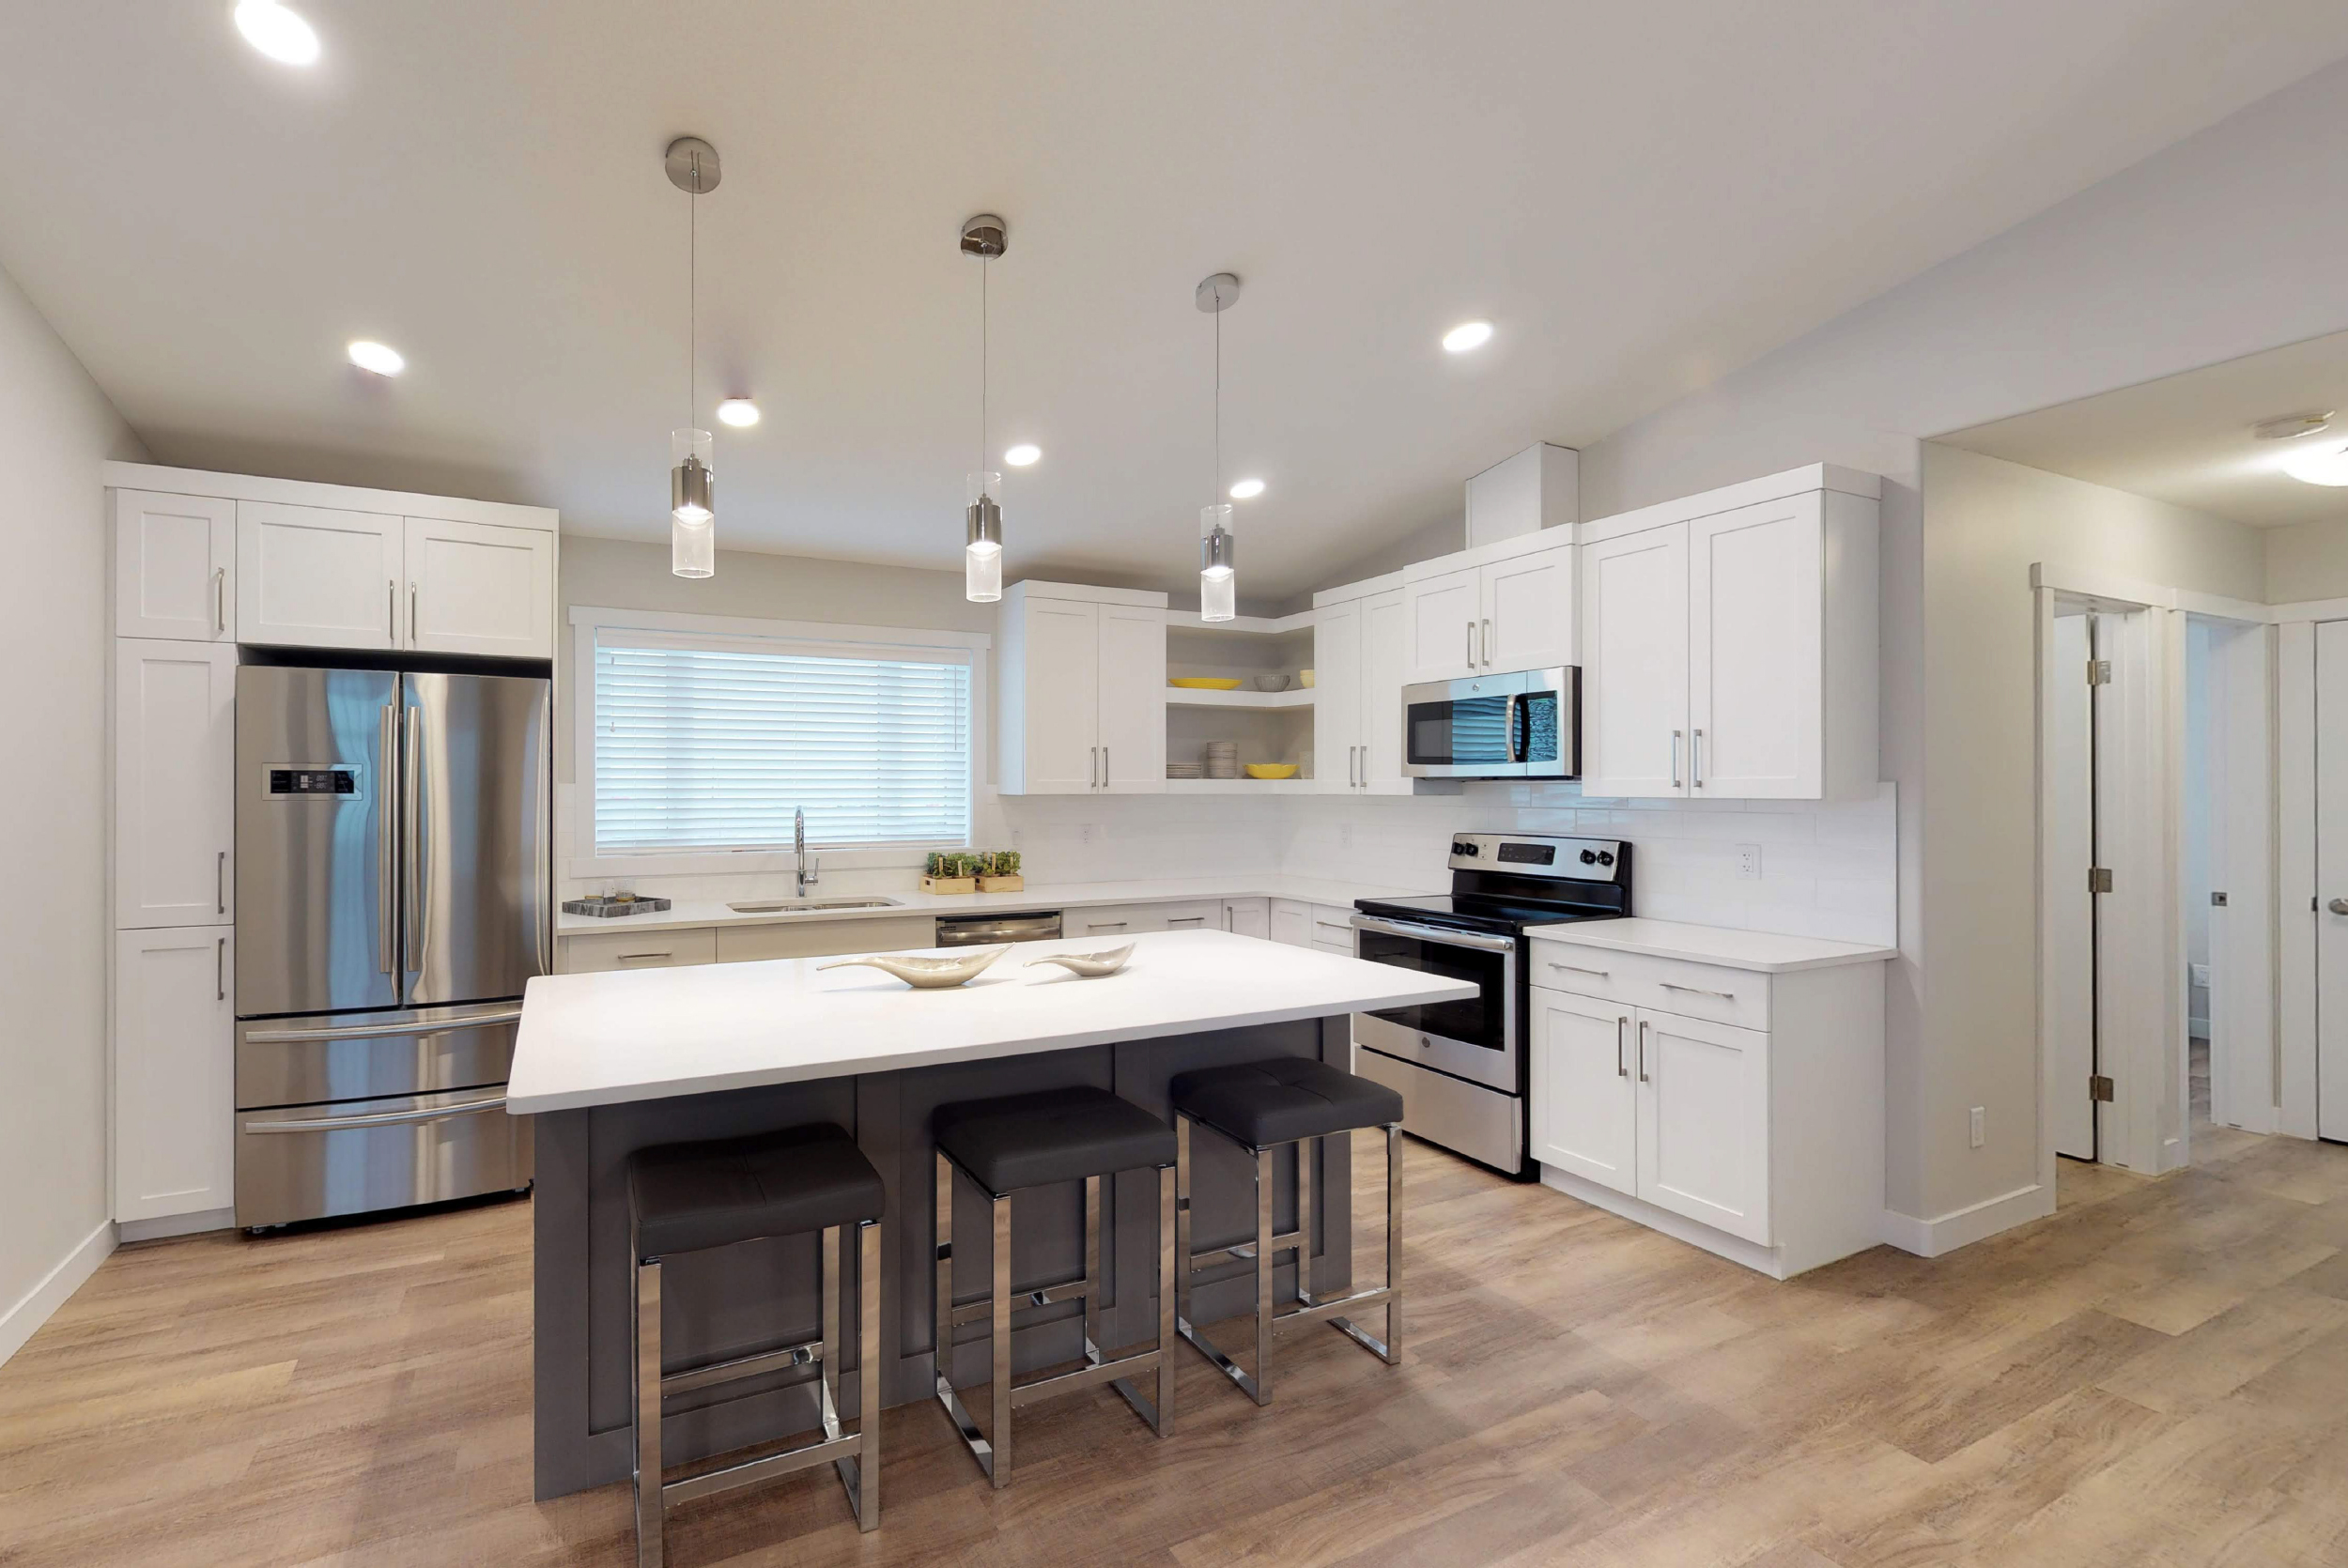 MODERN KITCHEN. - The Harlow / 1,617 sq ftSee plans >>>